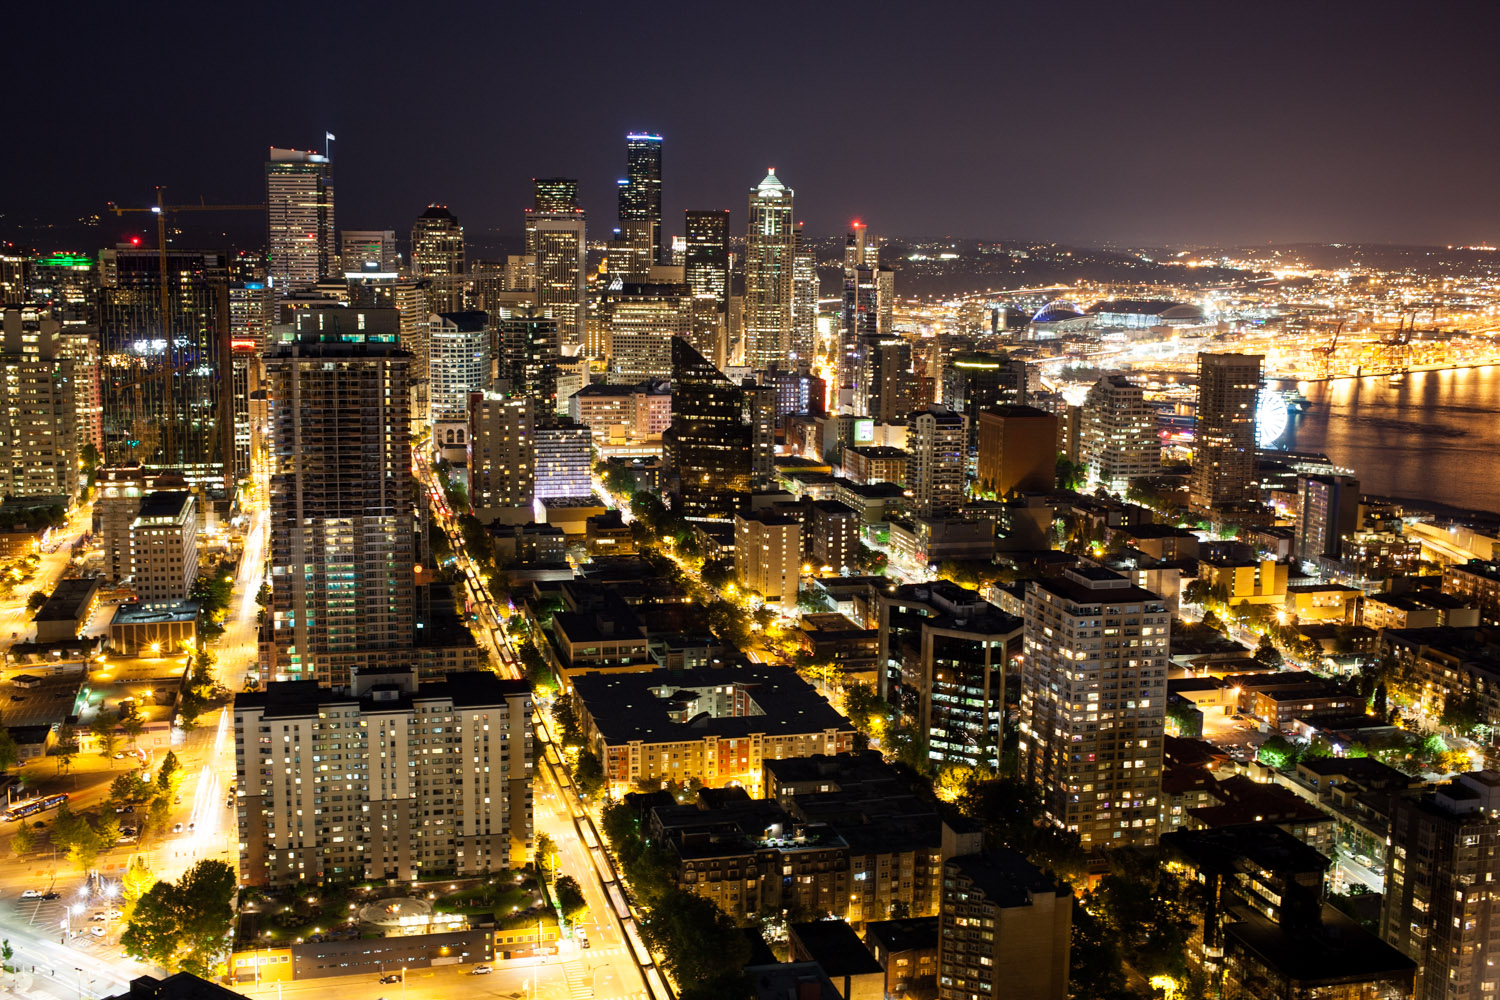 Seattle city lights from the Space Needle observation deck.